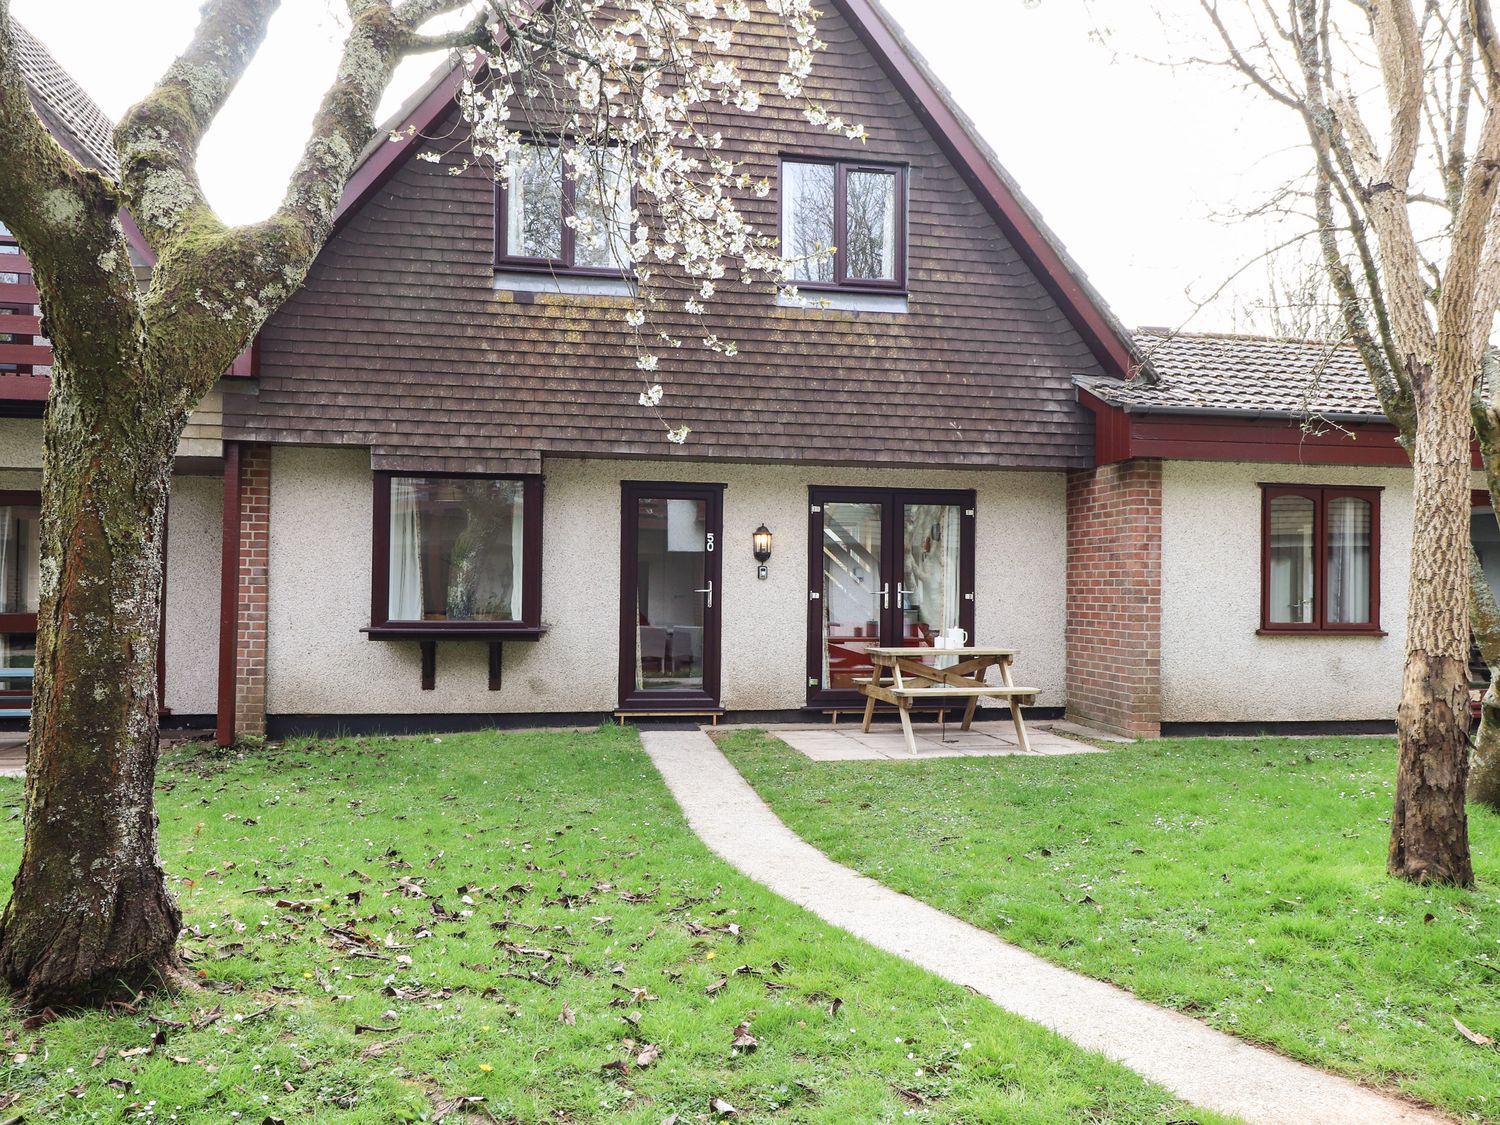 50 Trevithick Court, Tolroy Manor - Cornwall - 1046922 - photo 1